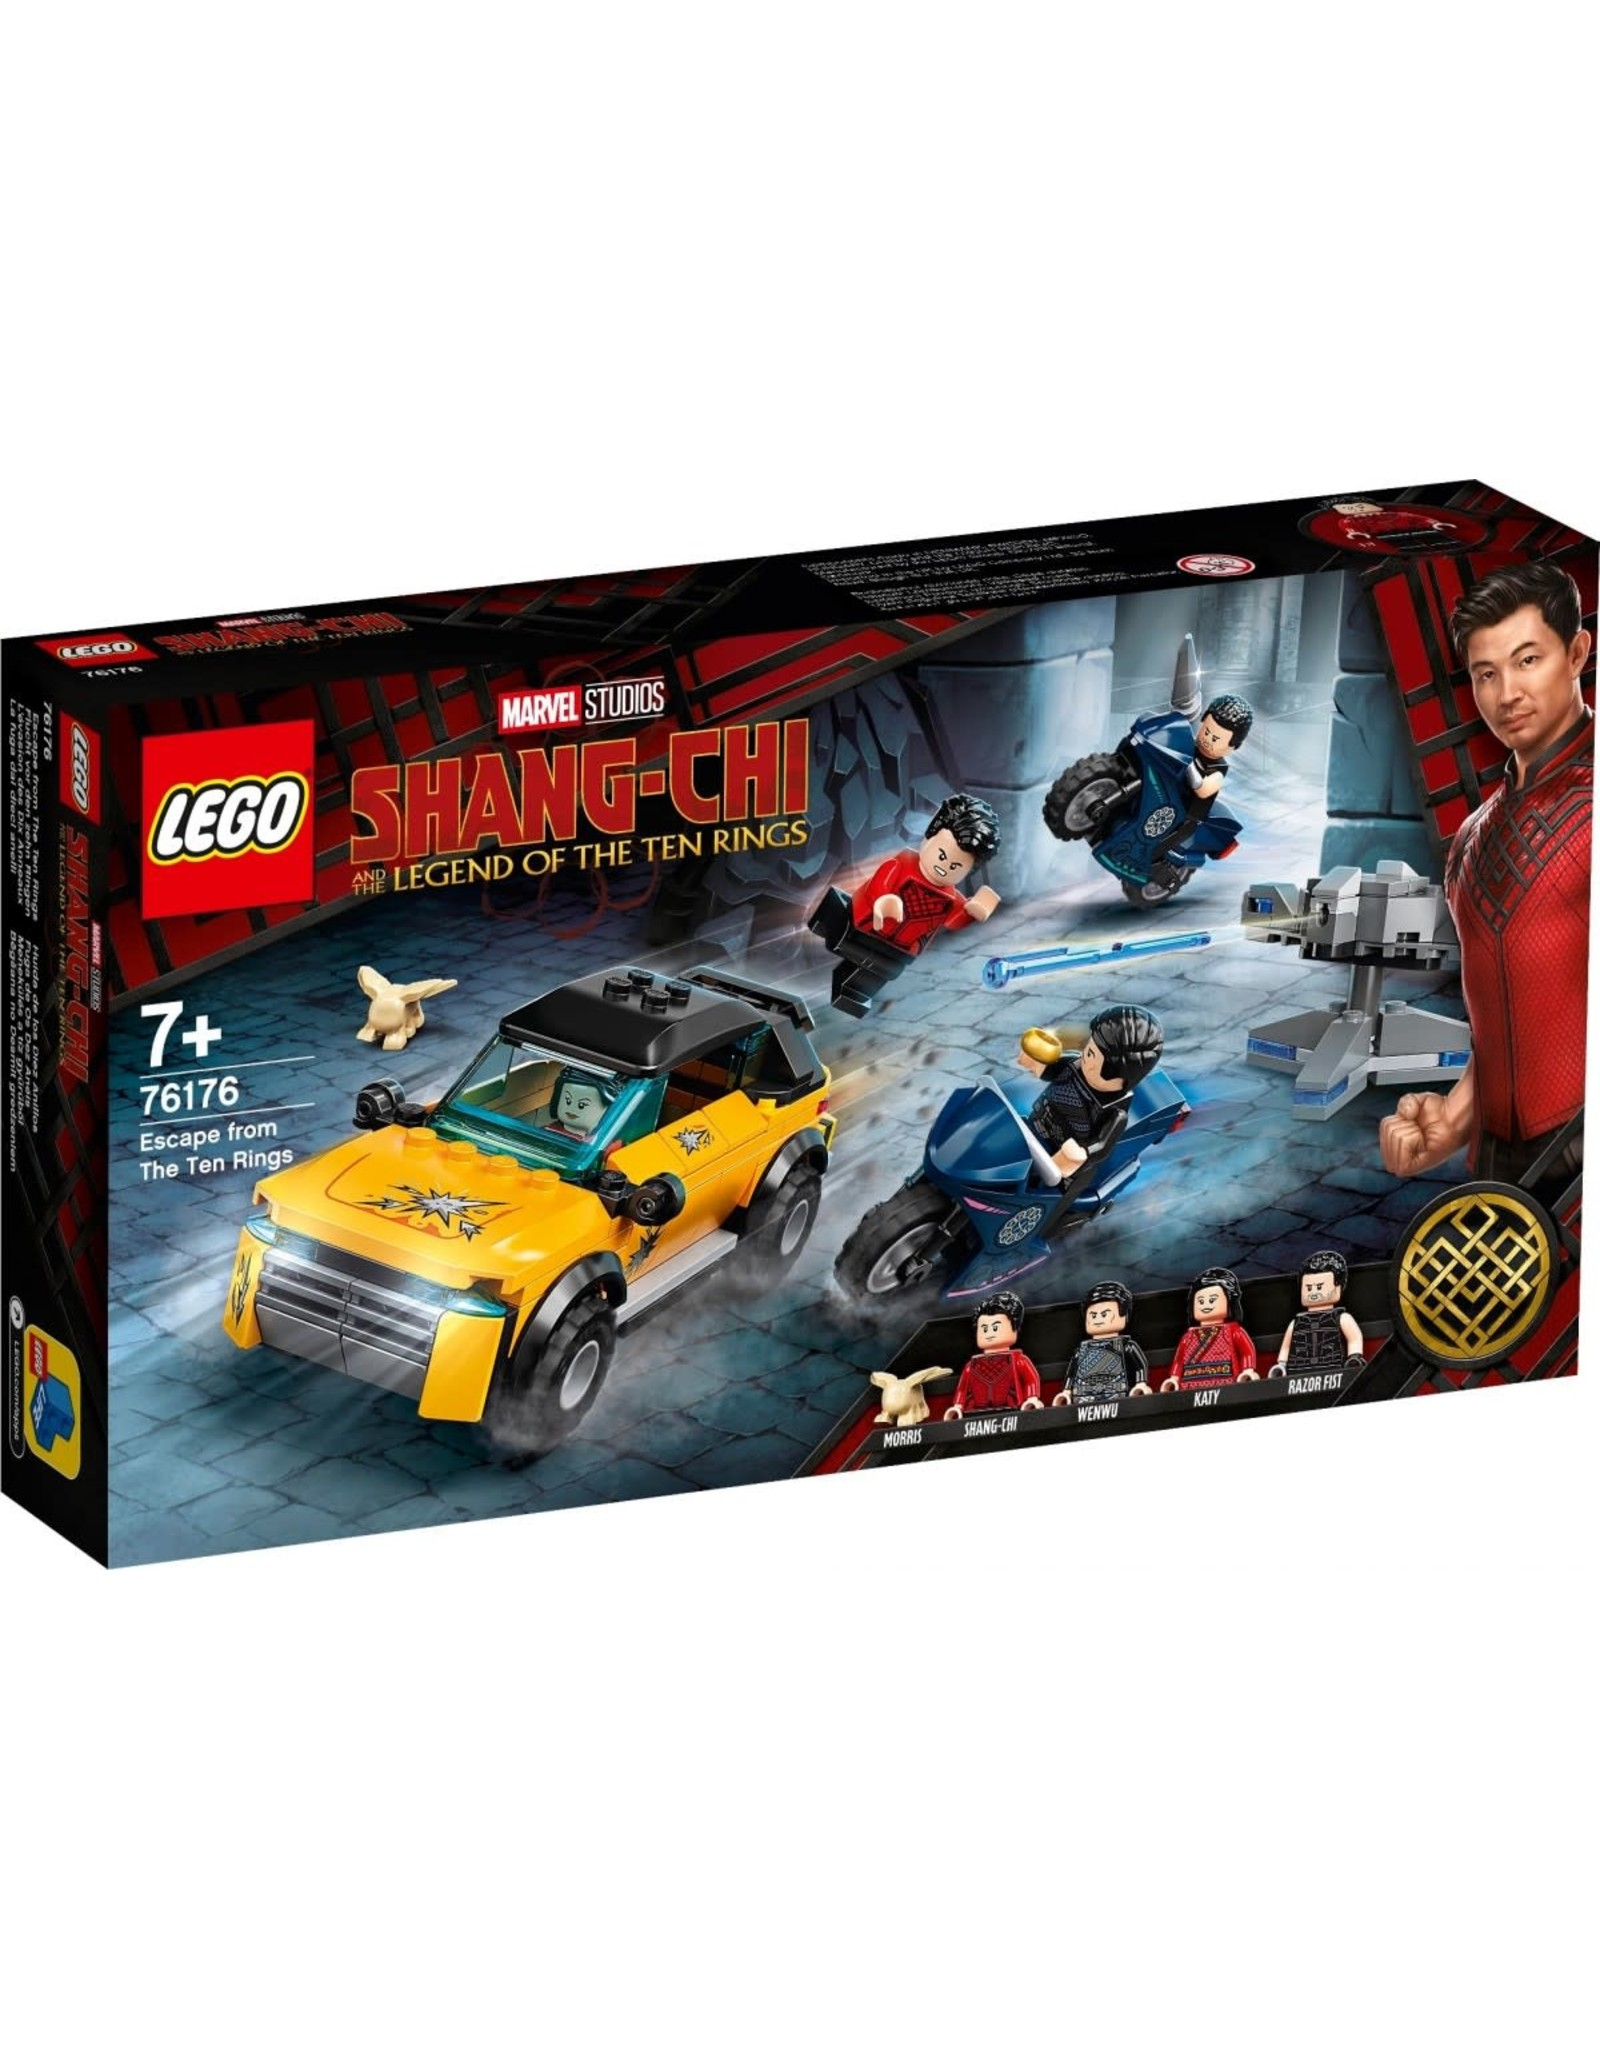 LEGO Super Heroes - 76176 - Shang-Chi and the Legend of the Ten Rings - Escape from the Ten Rings